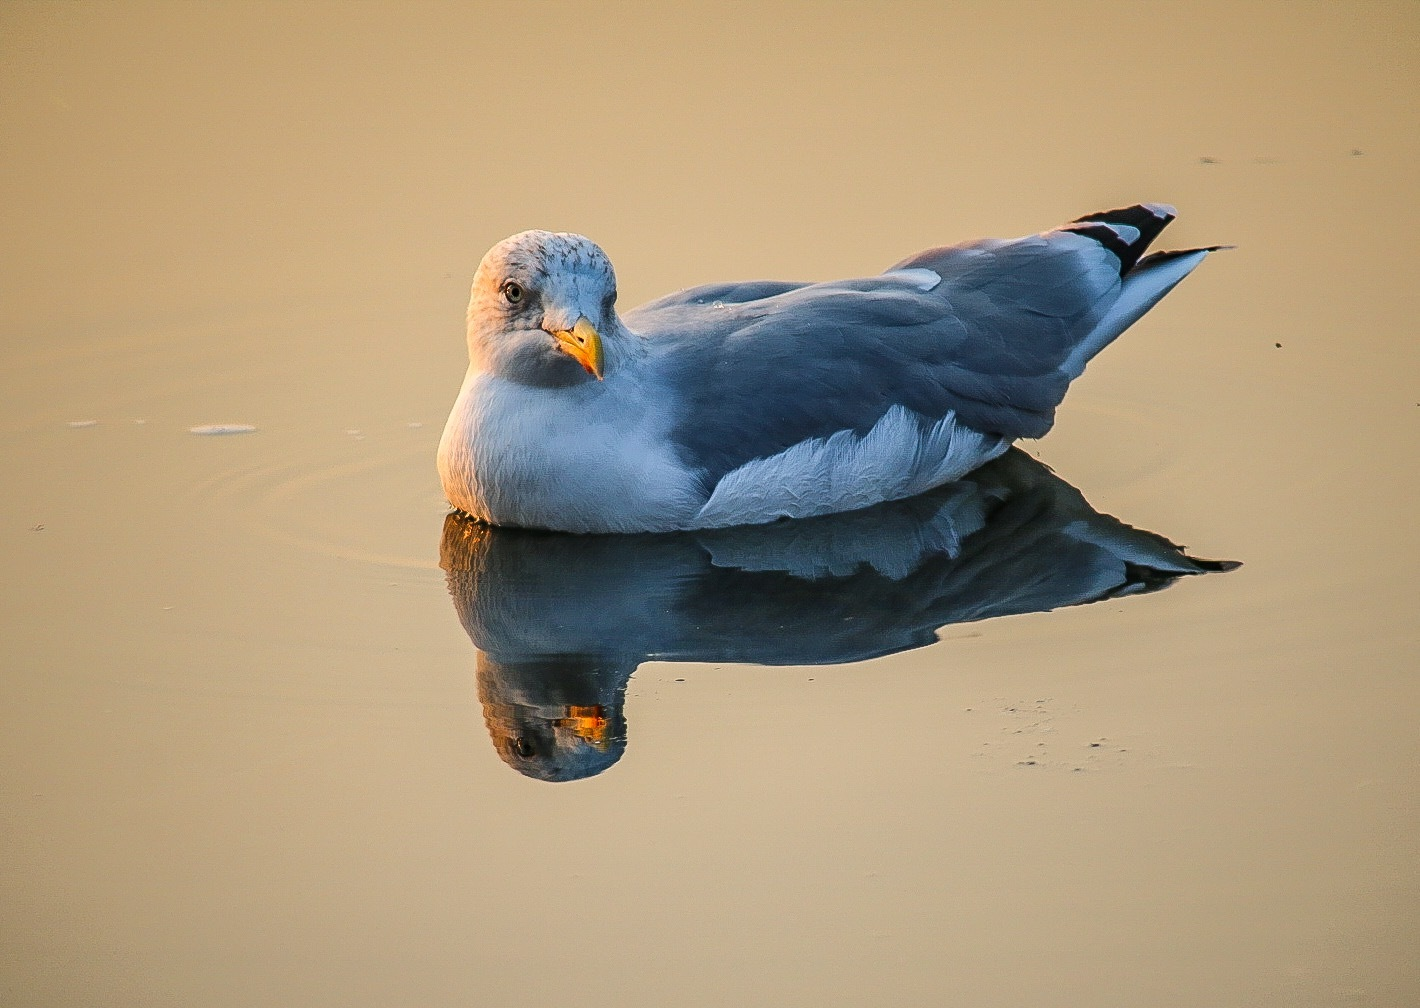 Gull by Ingstina